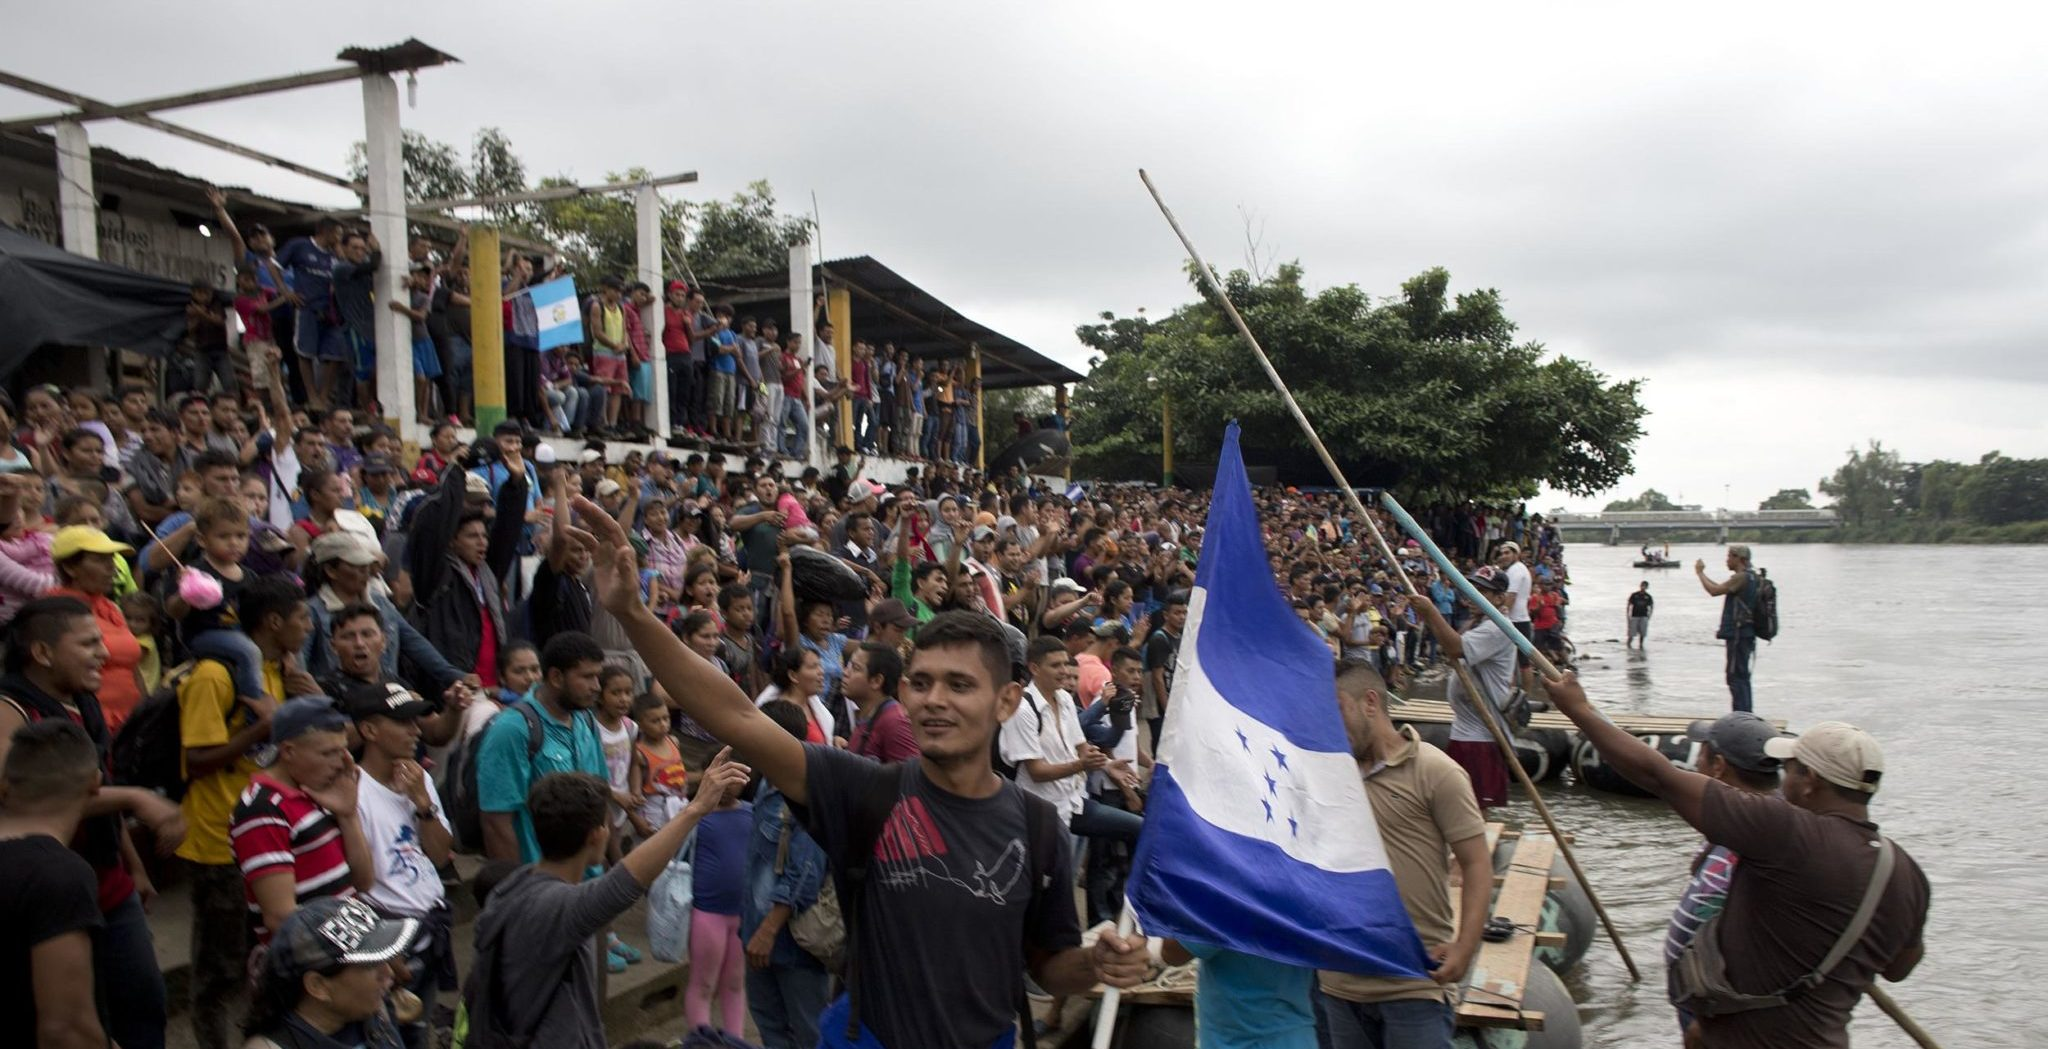 Here's What Happens When Migrant Caravan Arrives At U.S. Border